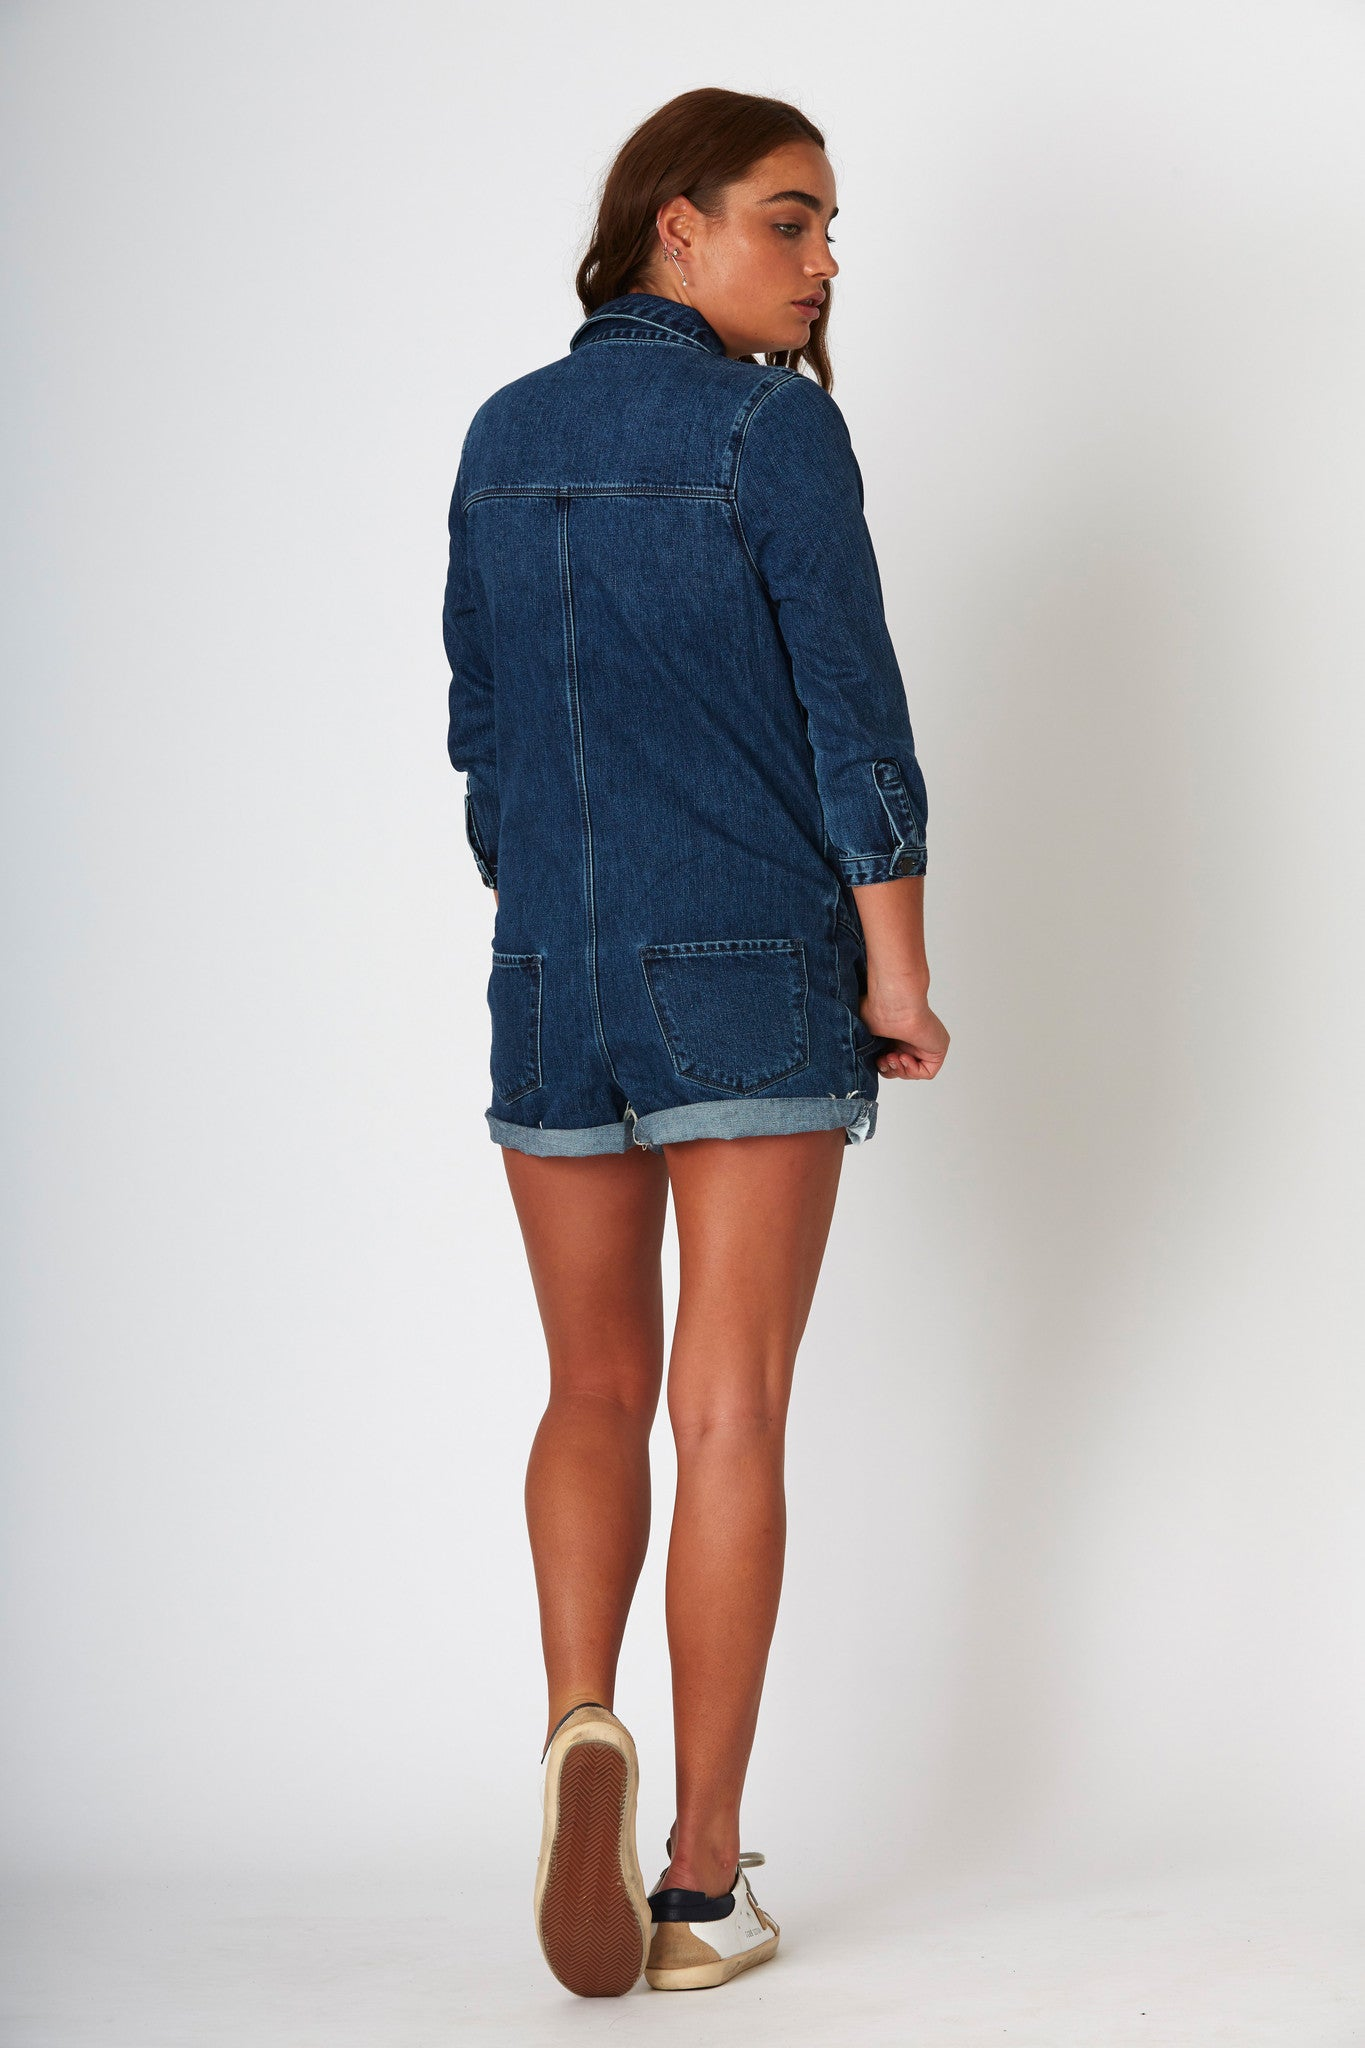 #3C10 Yamba Playsuit Blue Coal - denimcolab